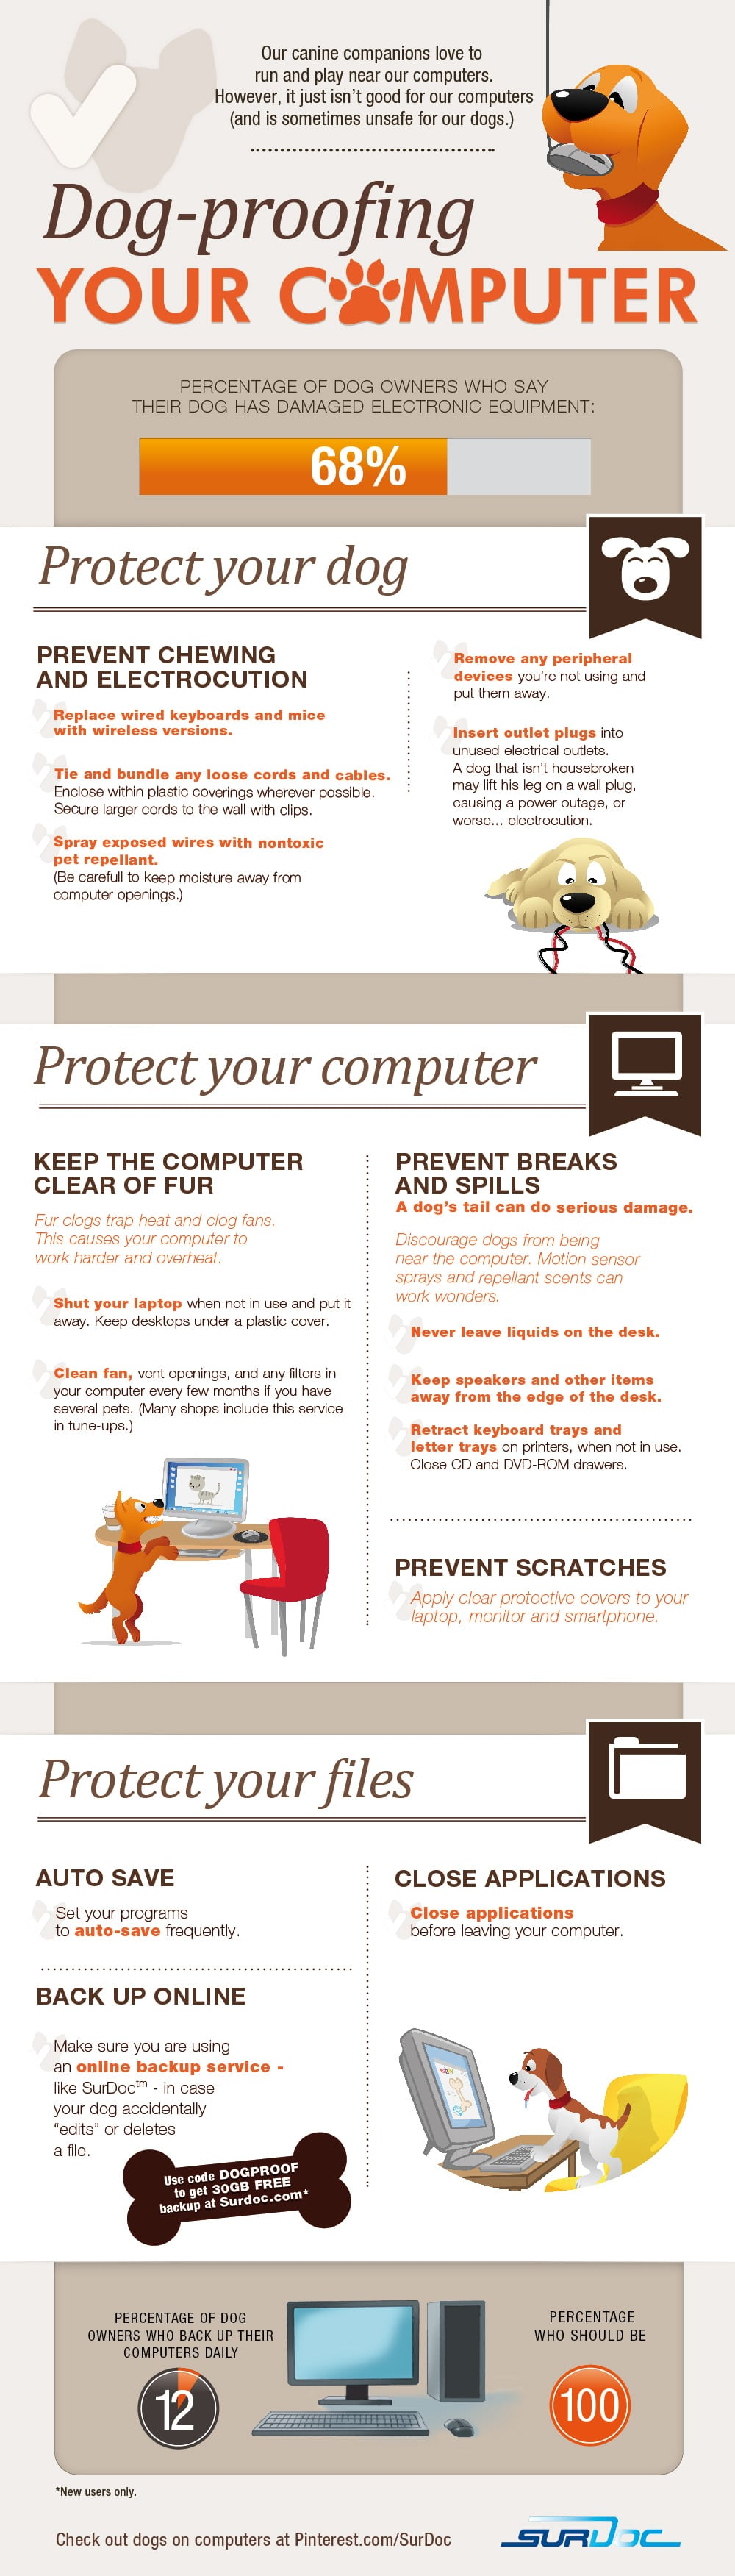 Dog-Proof-Your-Computer-Infographic